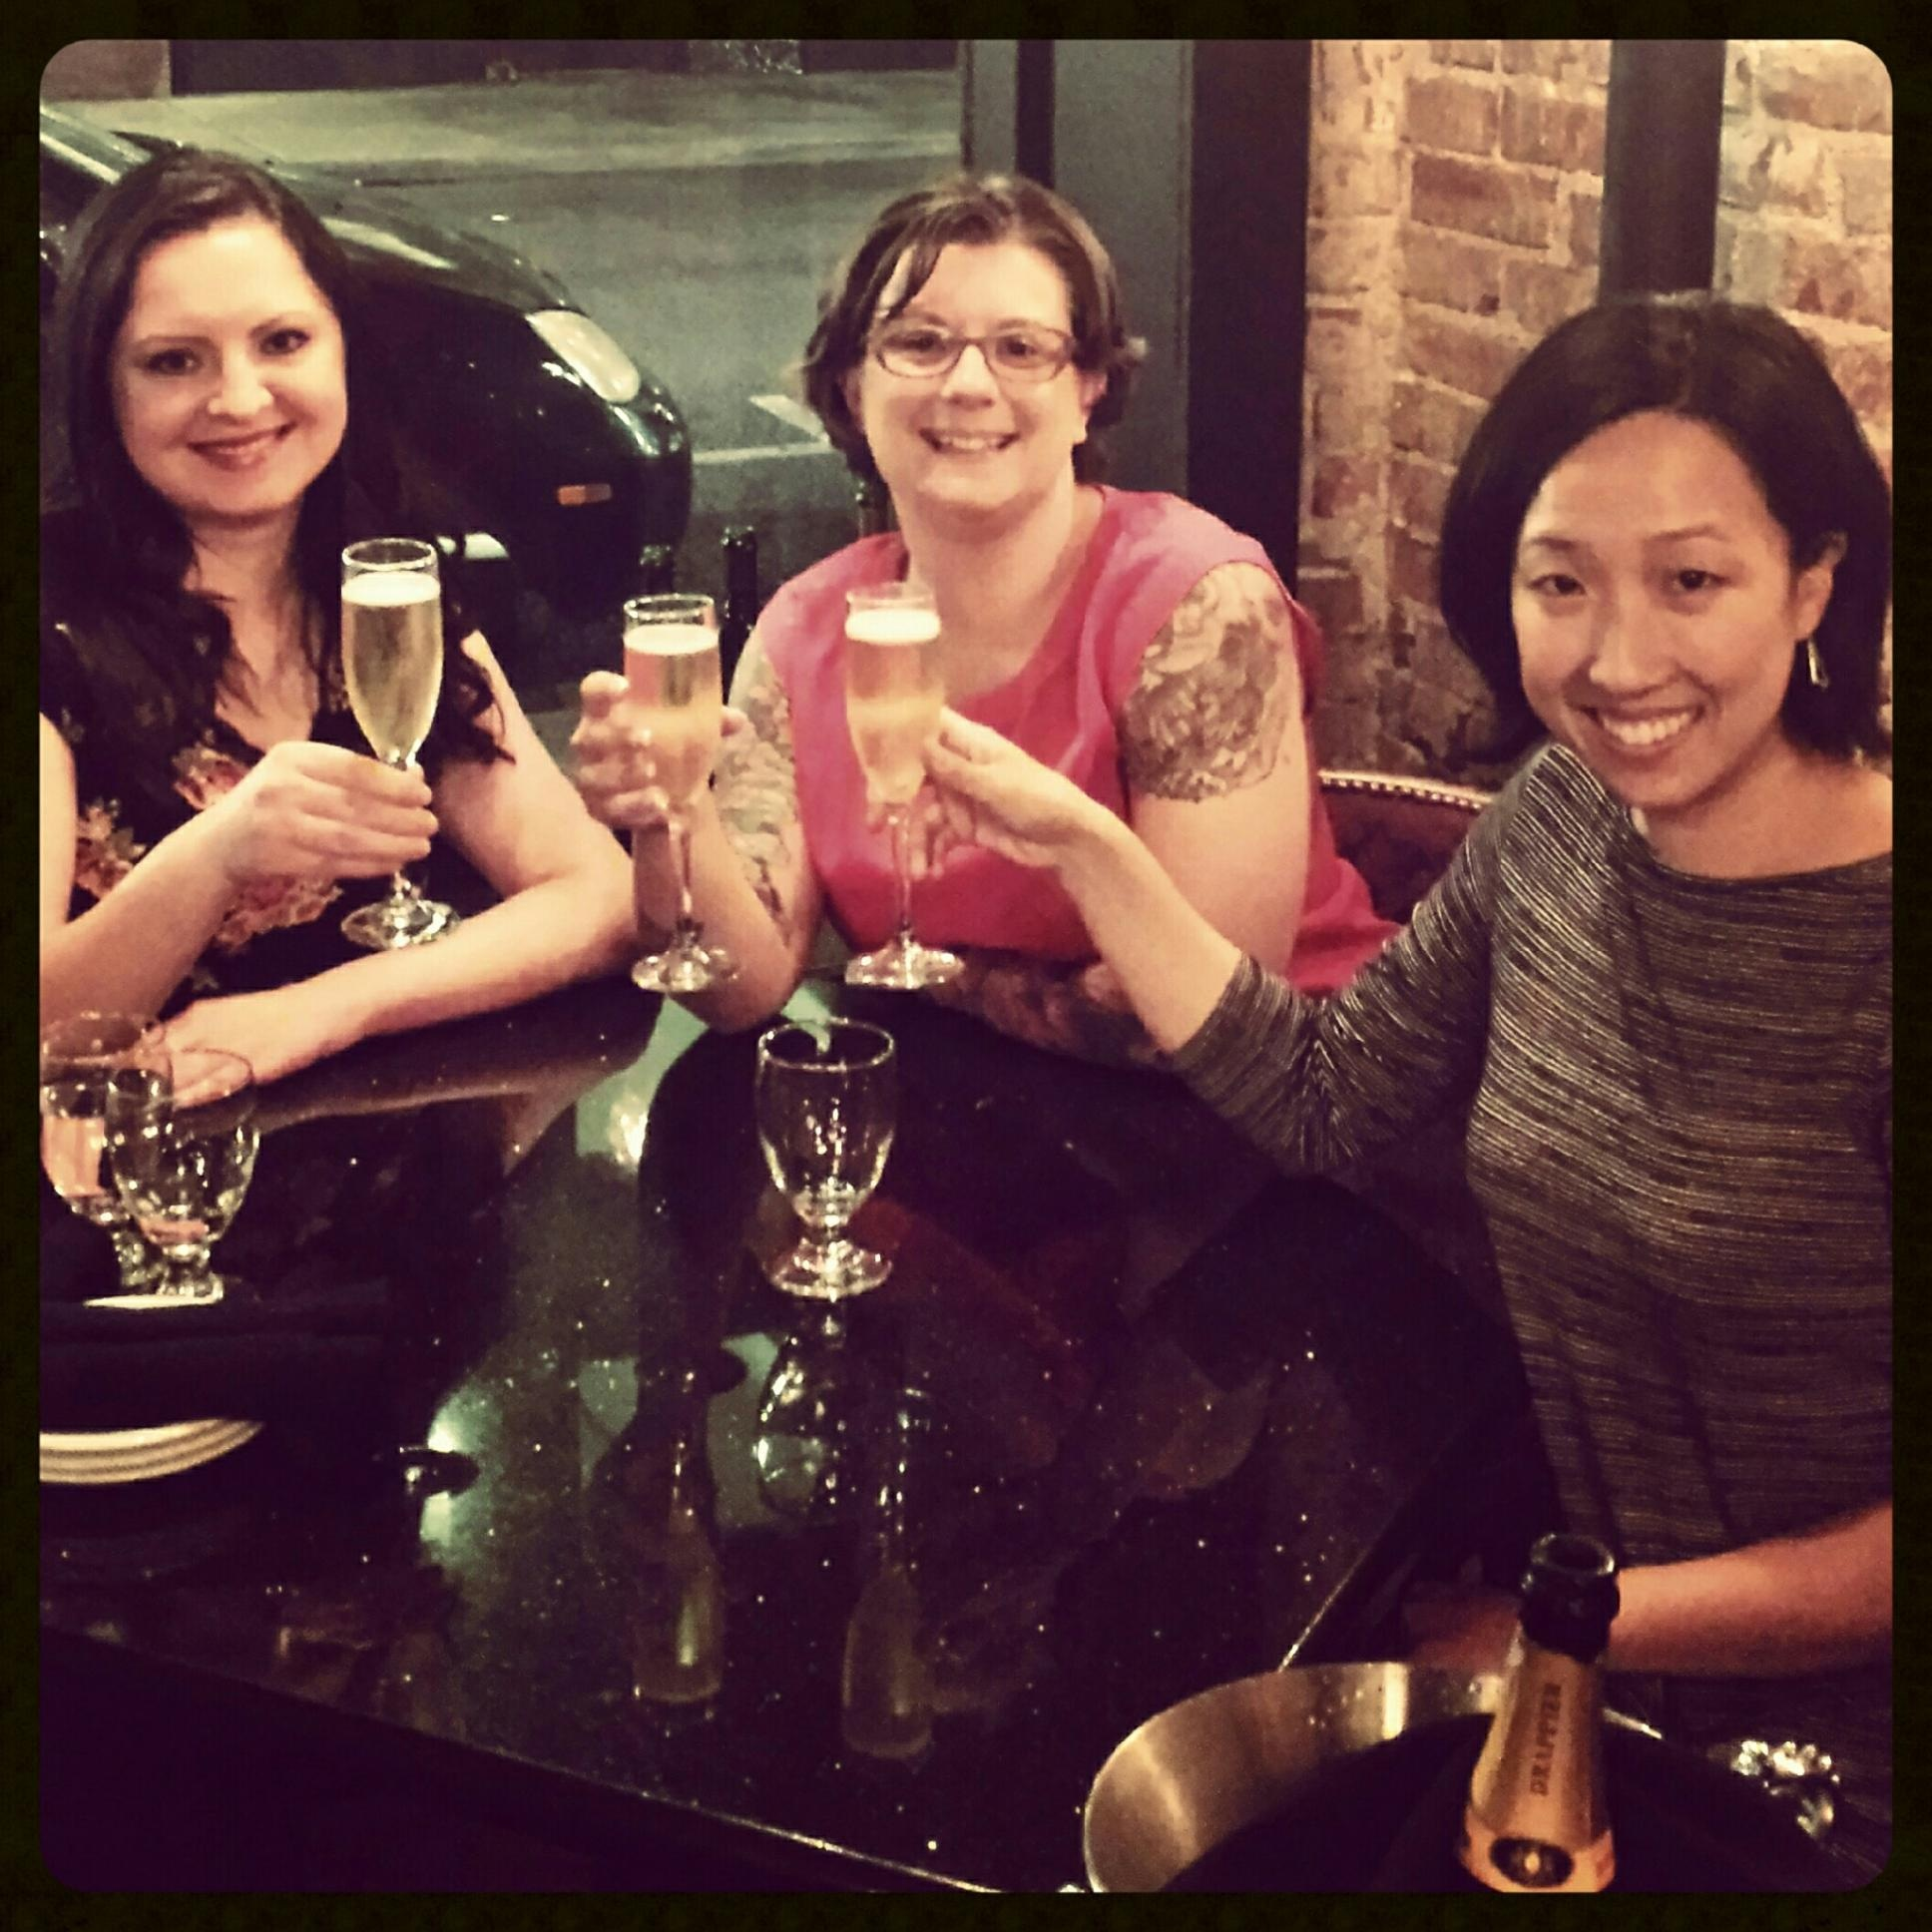 The three of us doing what we do best: wining and dining.